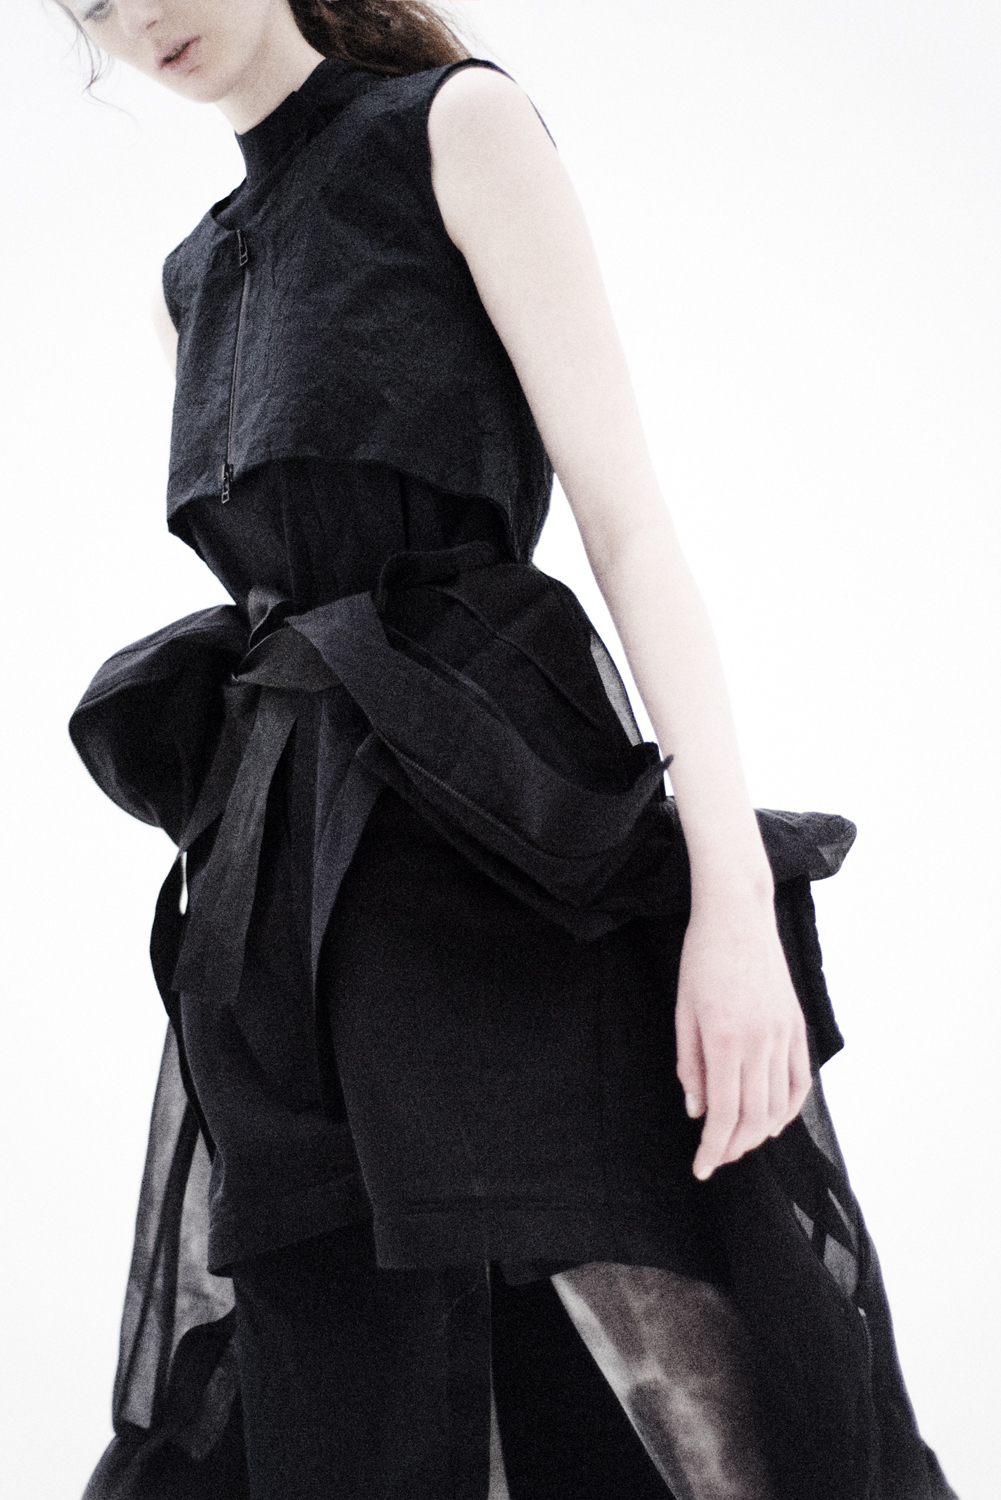 chemisier & gilet GALL Clothing, bomber Byungmun seo, leggings Roque by Ilaria Nistri